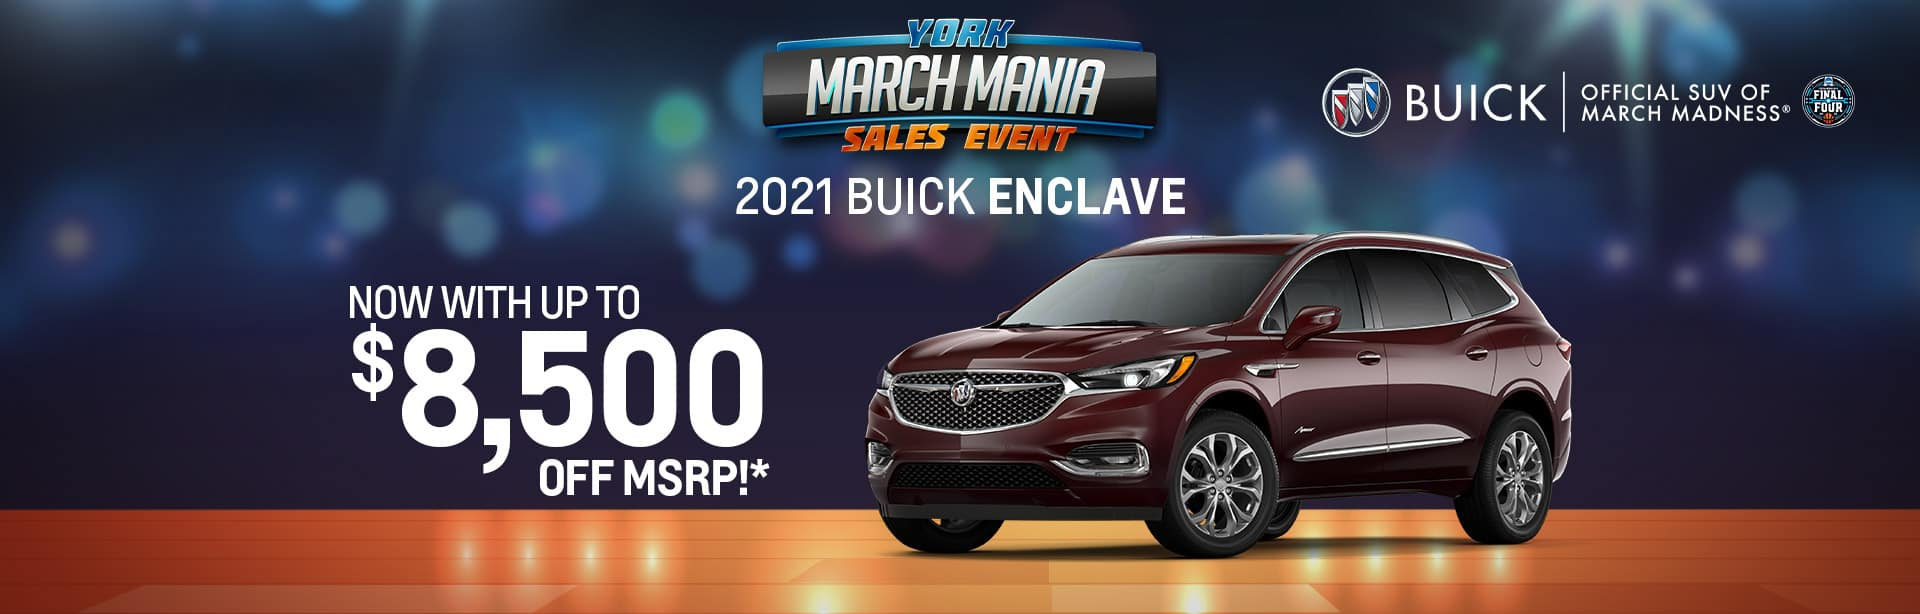 Best rebate offer on a new 2021 Buick Enclave near Brazil IN